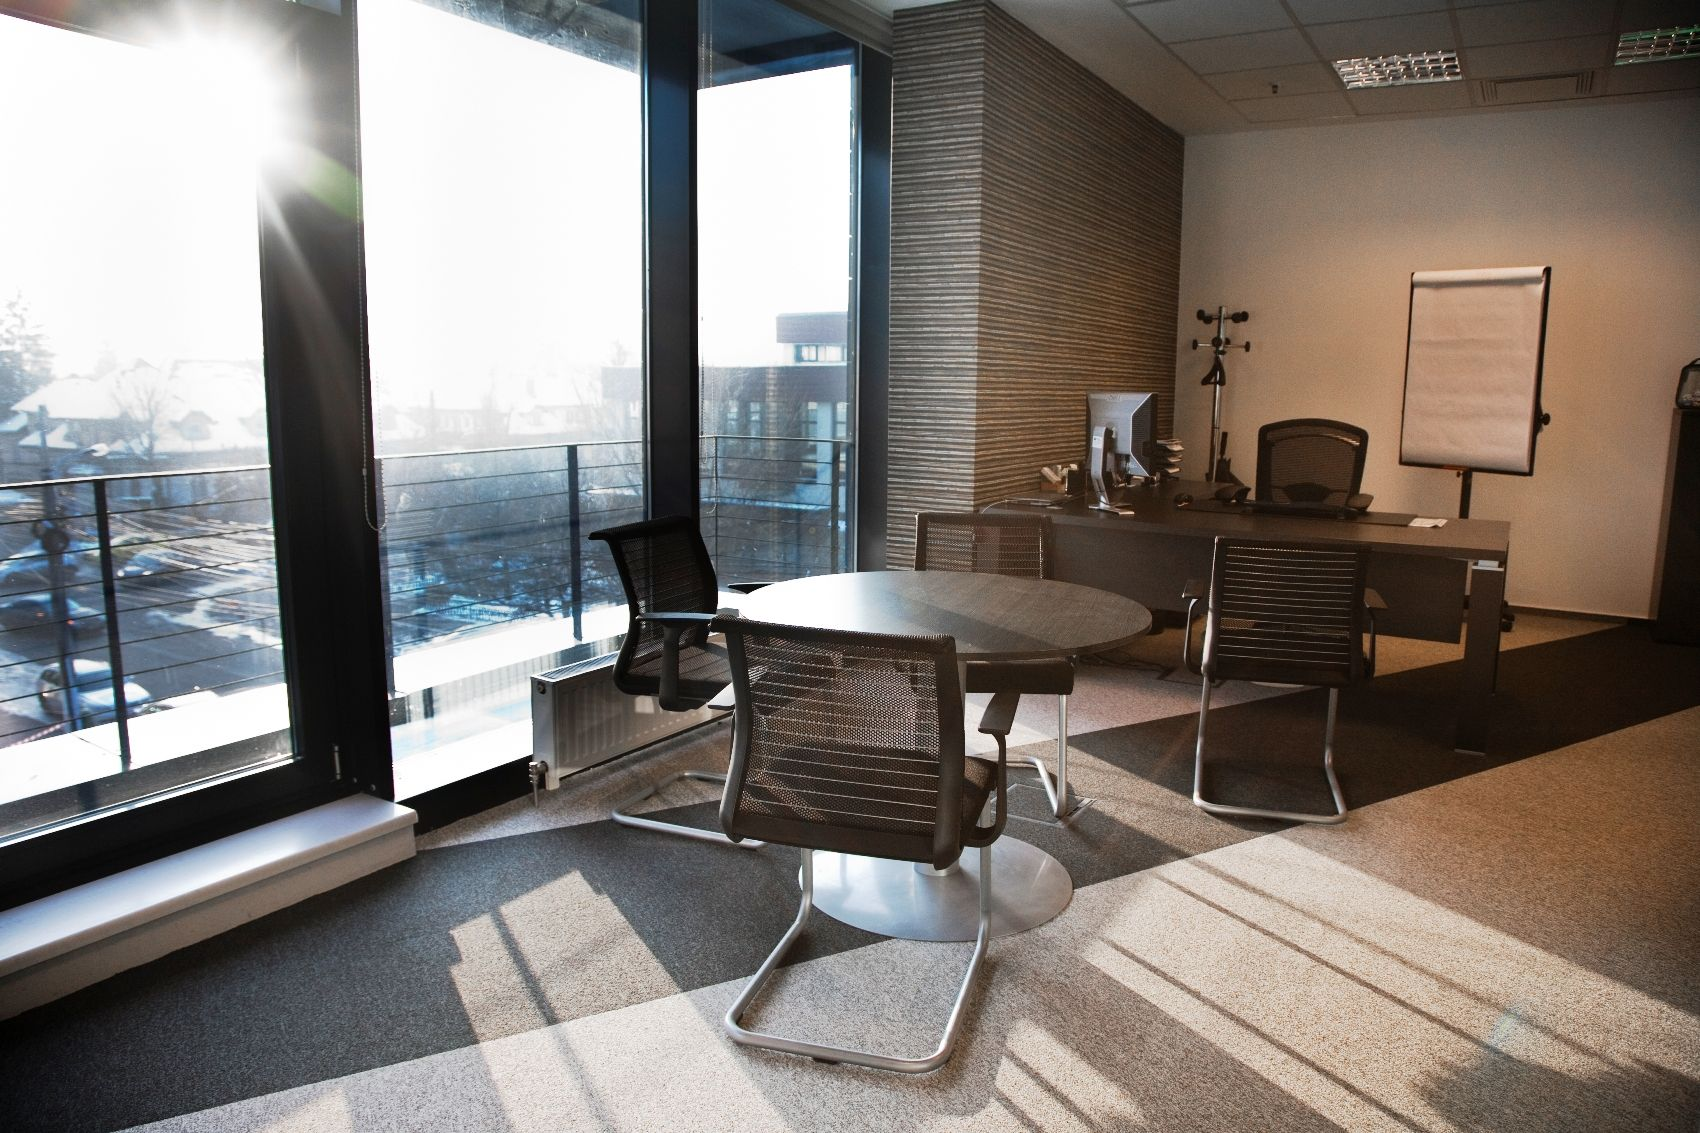 Tewes design nyc executive office seattle interior design - Management Office Office Interior Design